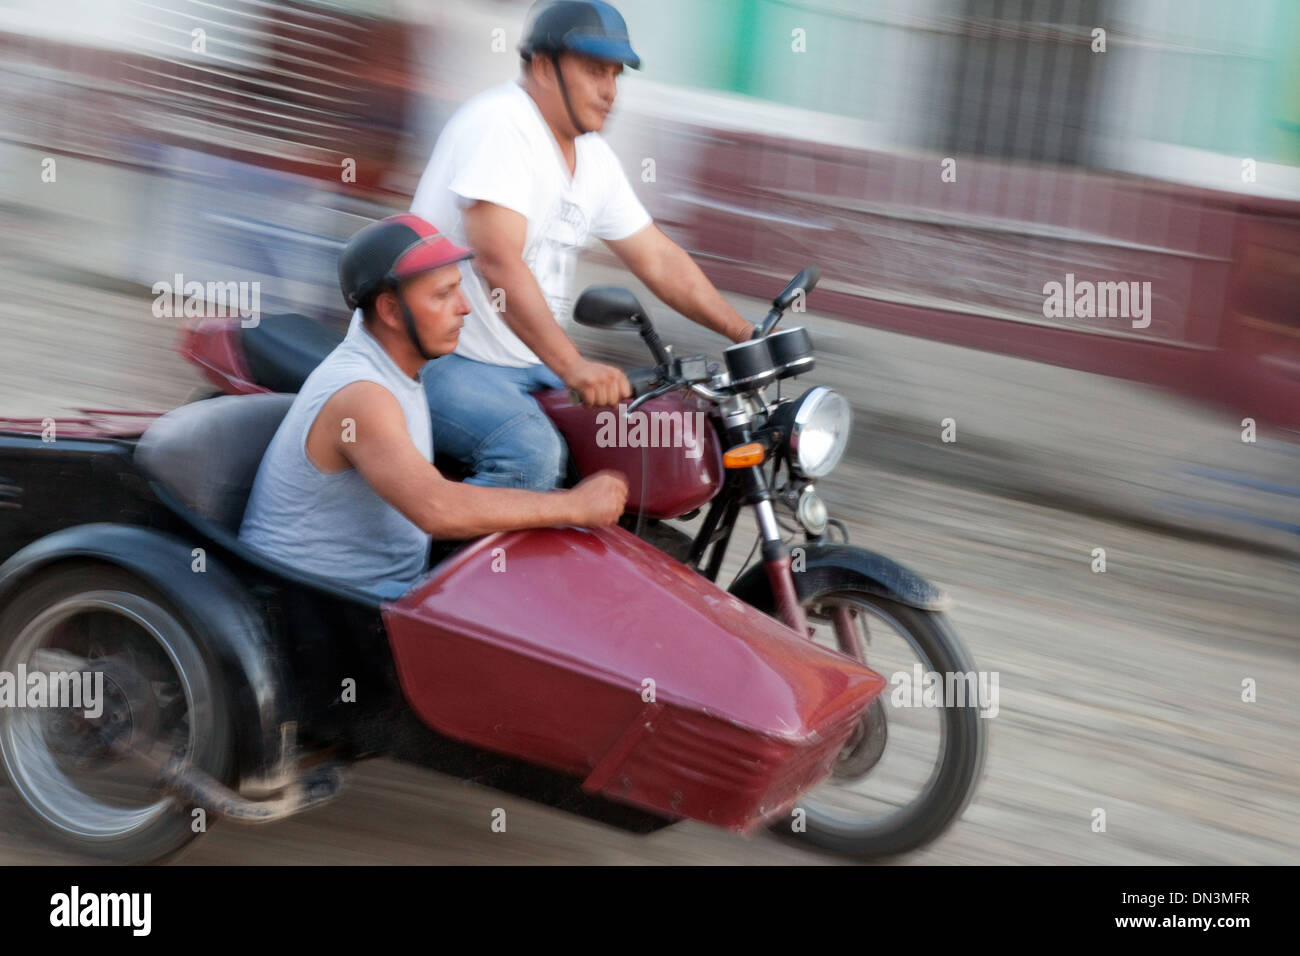 Cuba, men riding a motorcycle and side car with motion blur, Trinidad, Cuba Caribbean, Latin America - Stock Image